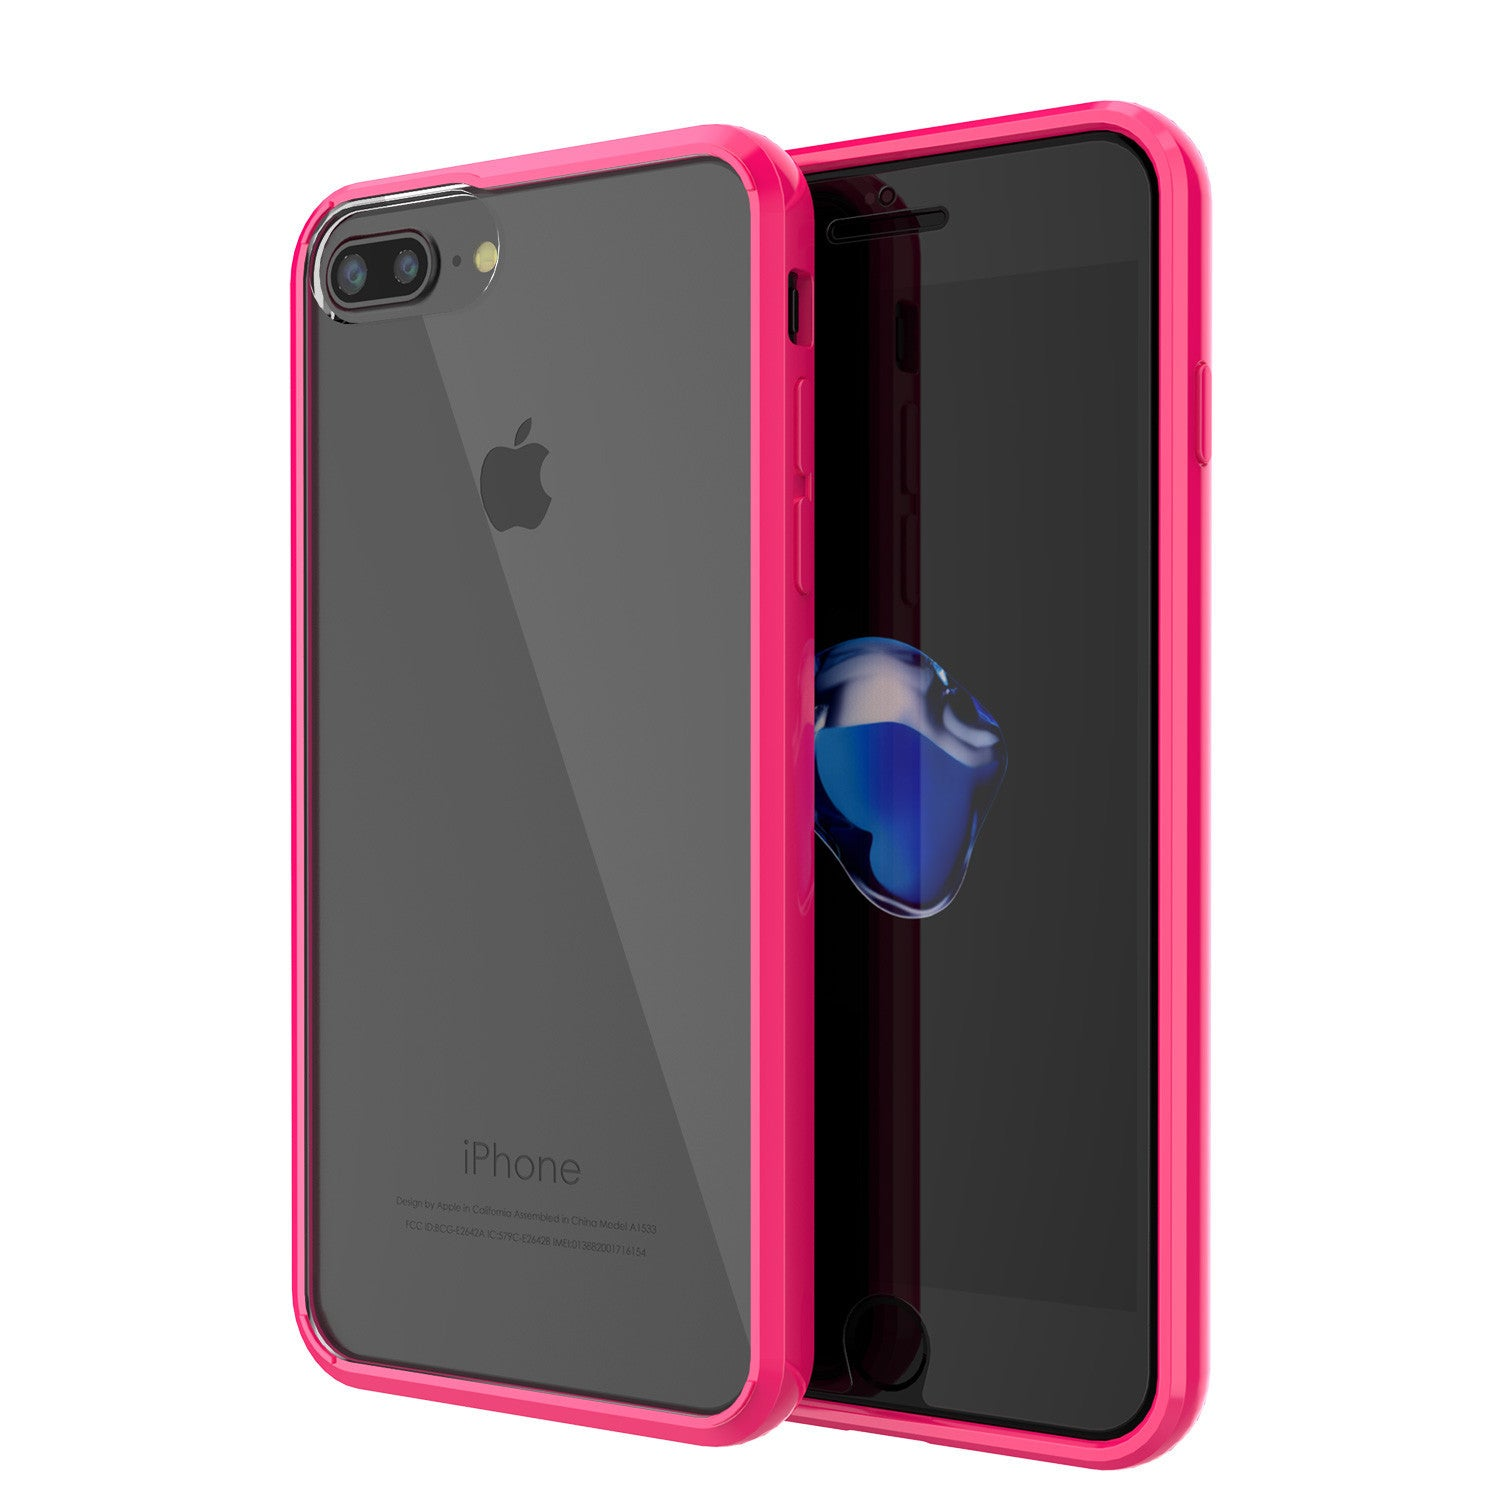 iPhone 7 Case Punkcase® LUCID 2.0 Pink Series w/ PUNK SHIELD Screen Protector | Ultra Fit